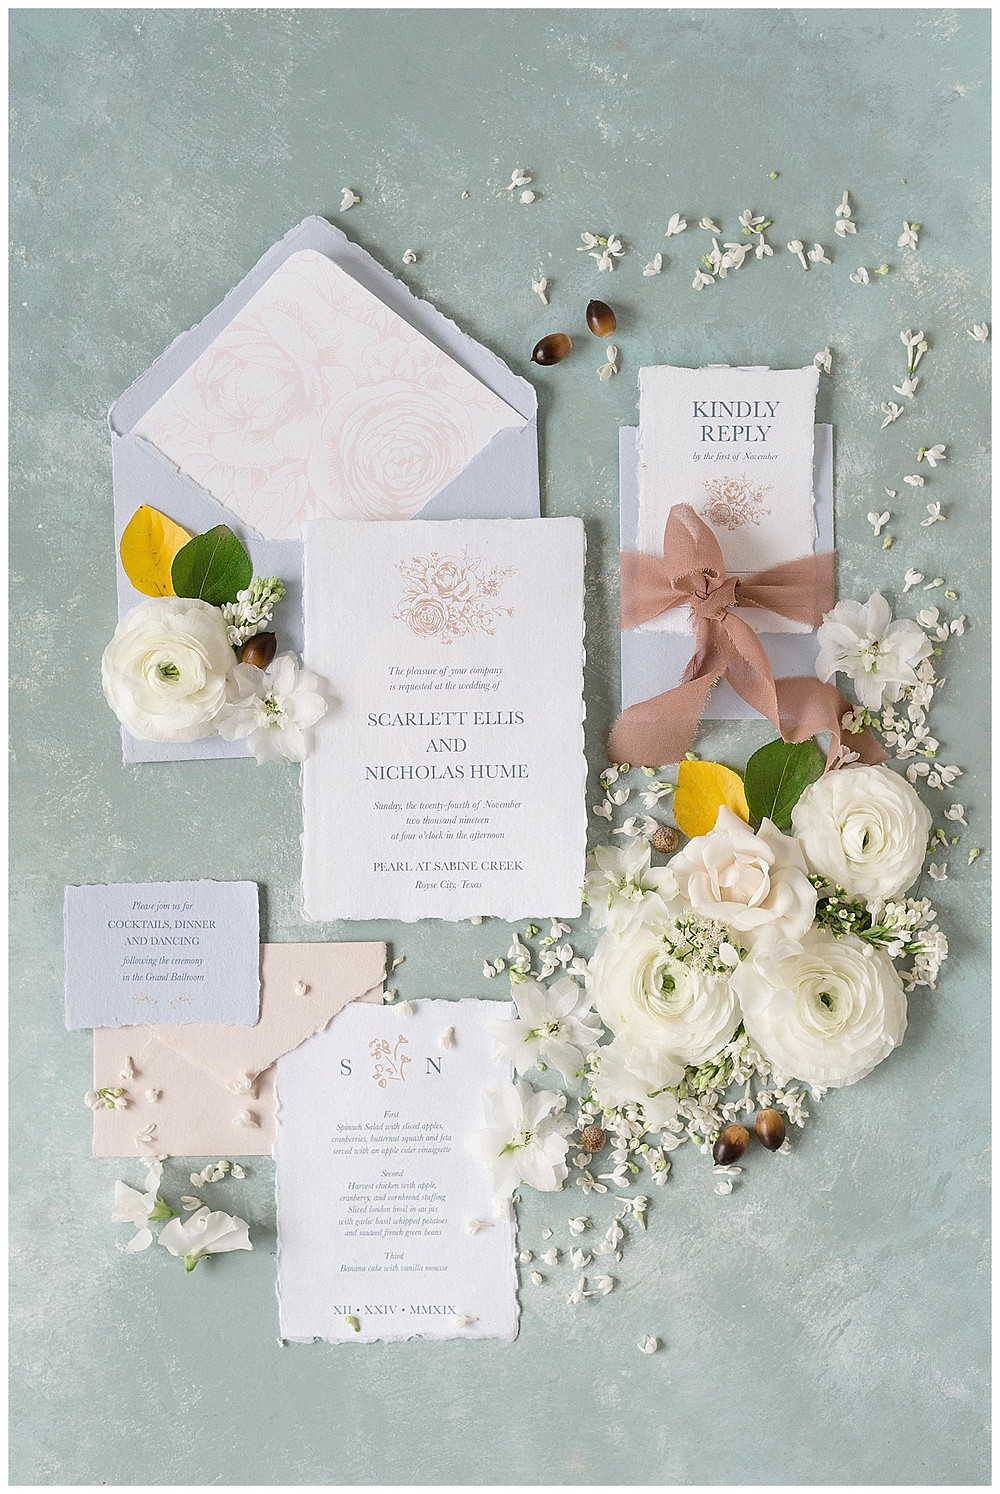 the pearl at sabine creek, dallas wedding photography, dallas wedding, spring, texas, wedding invitation suite flatlay,  styled flat lay, blue envelopes with deckled edges, mauve ribbon